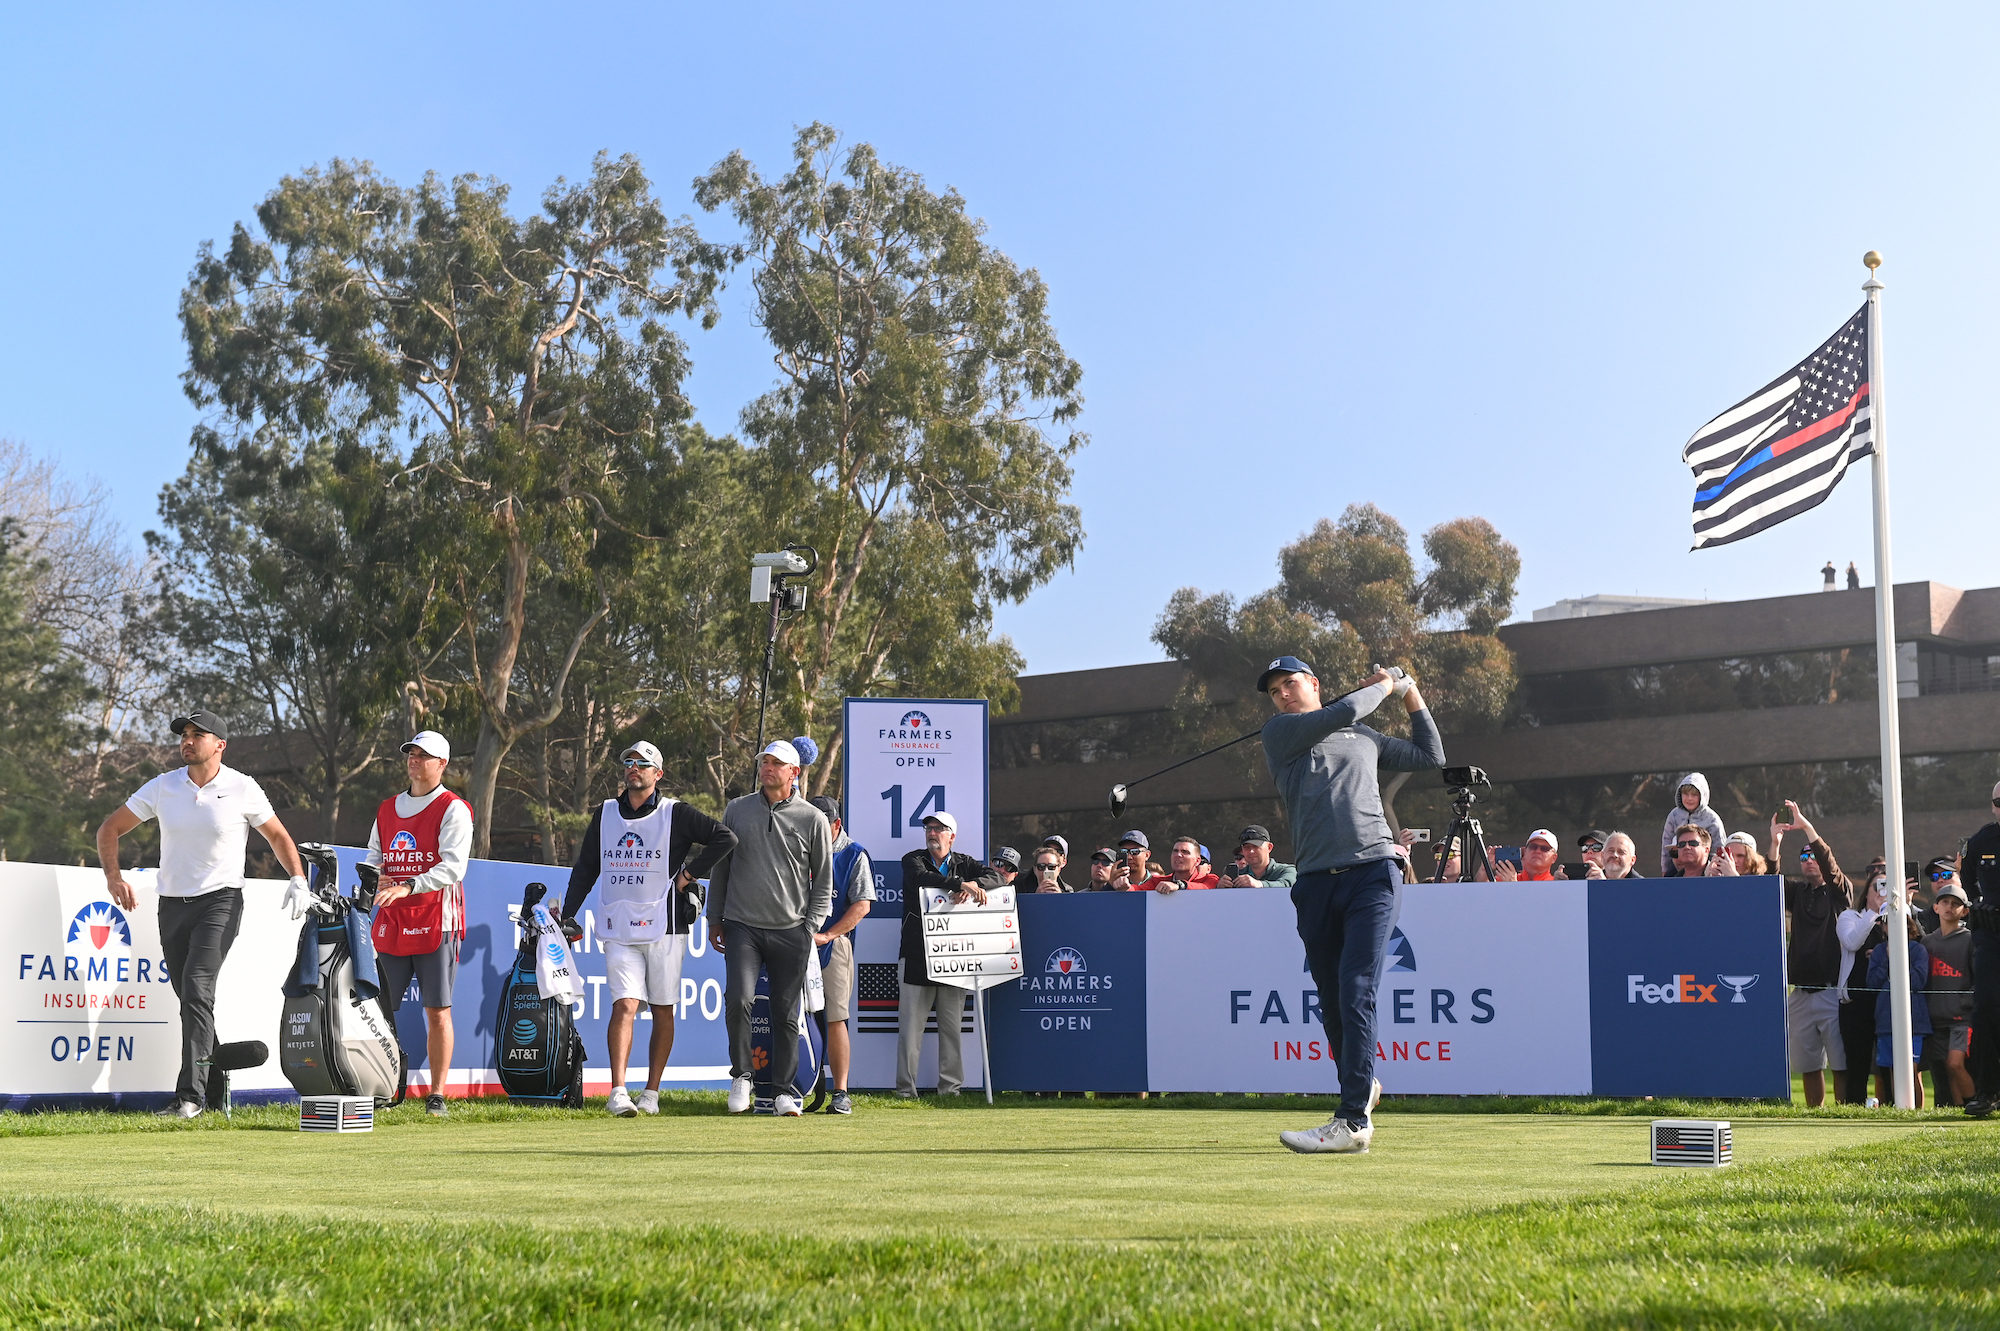 2020 Farmers Insurance Open: Round 3 - Tee Shot on No. 14